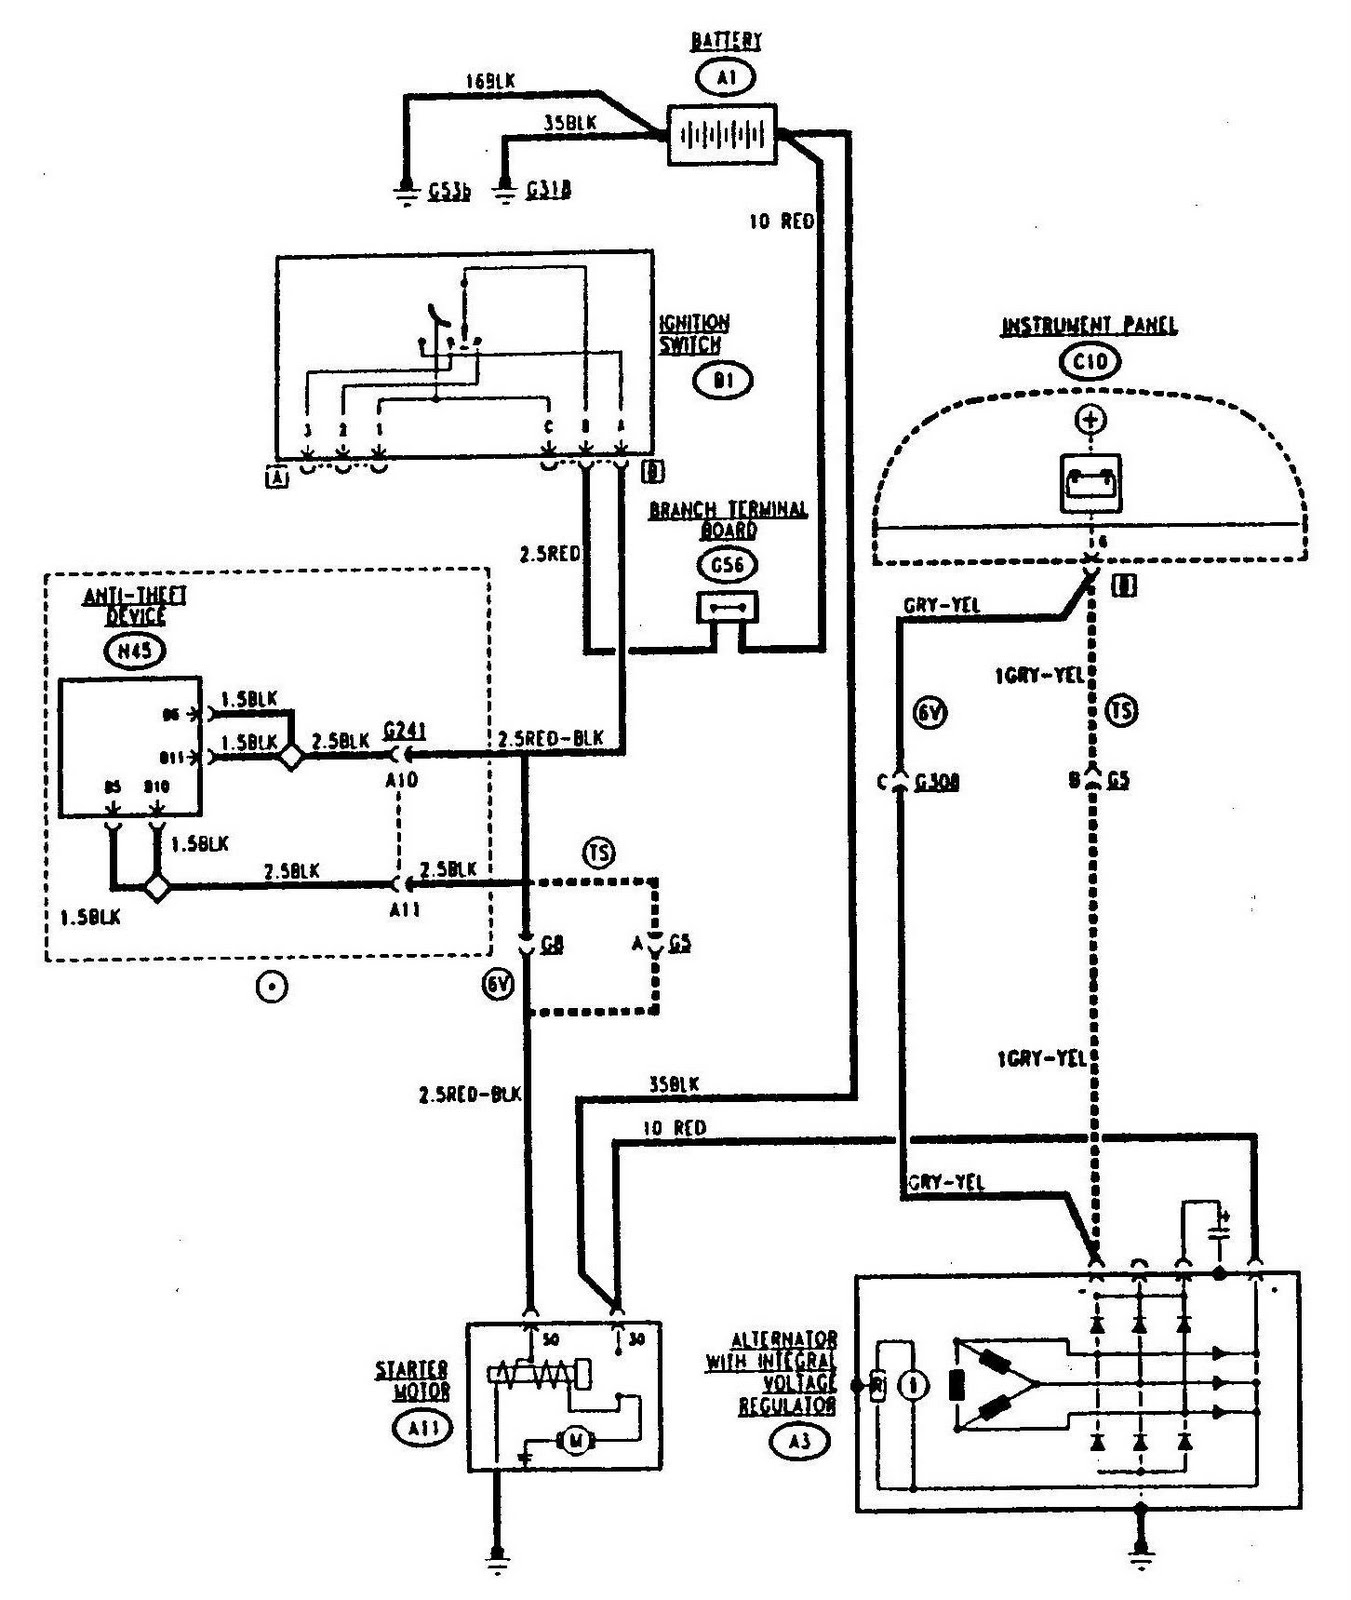 Alfa Romeo 155 Starting and Charging Circuit Diagram | Wiringdiagrams